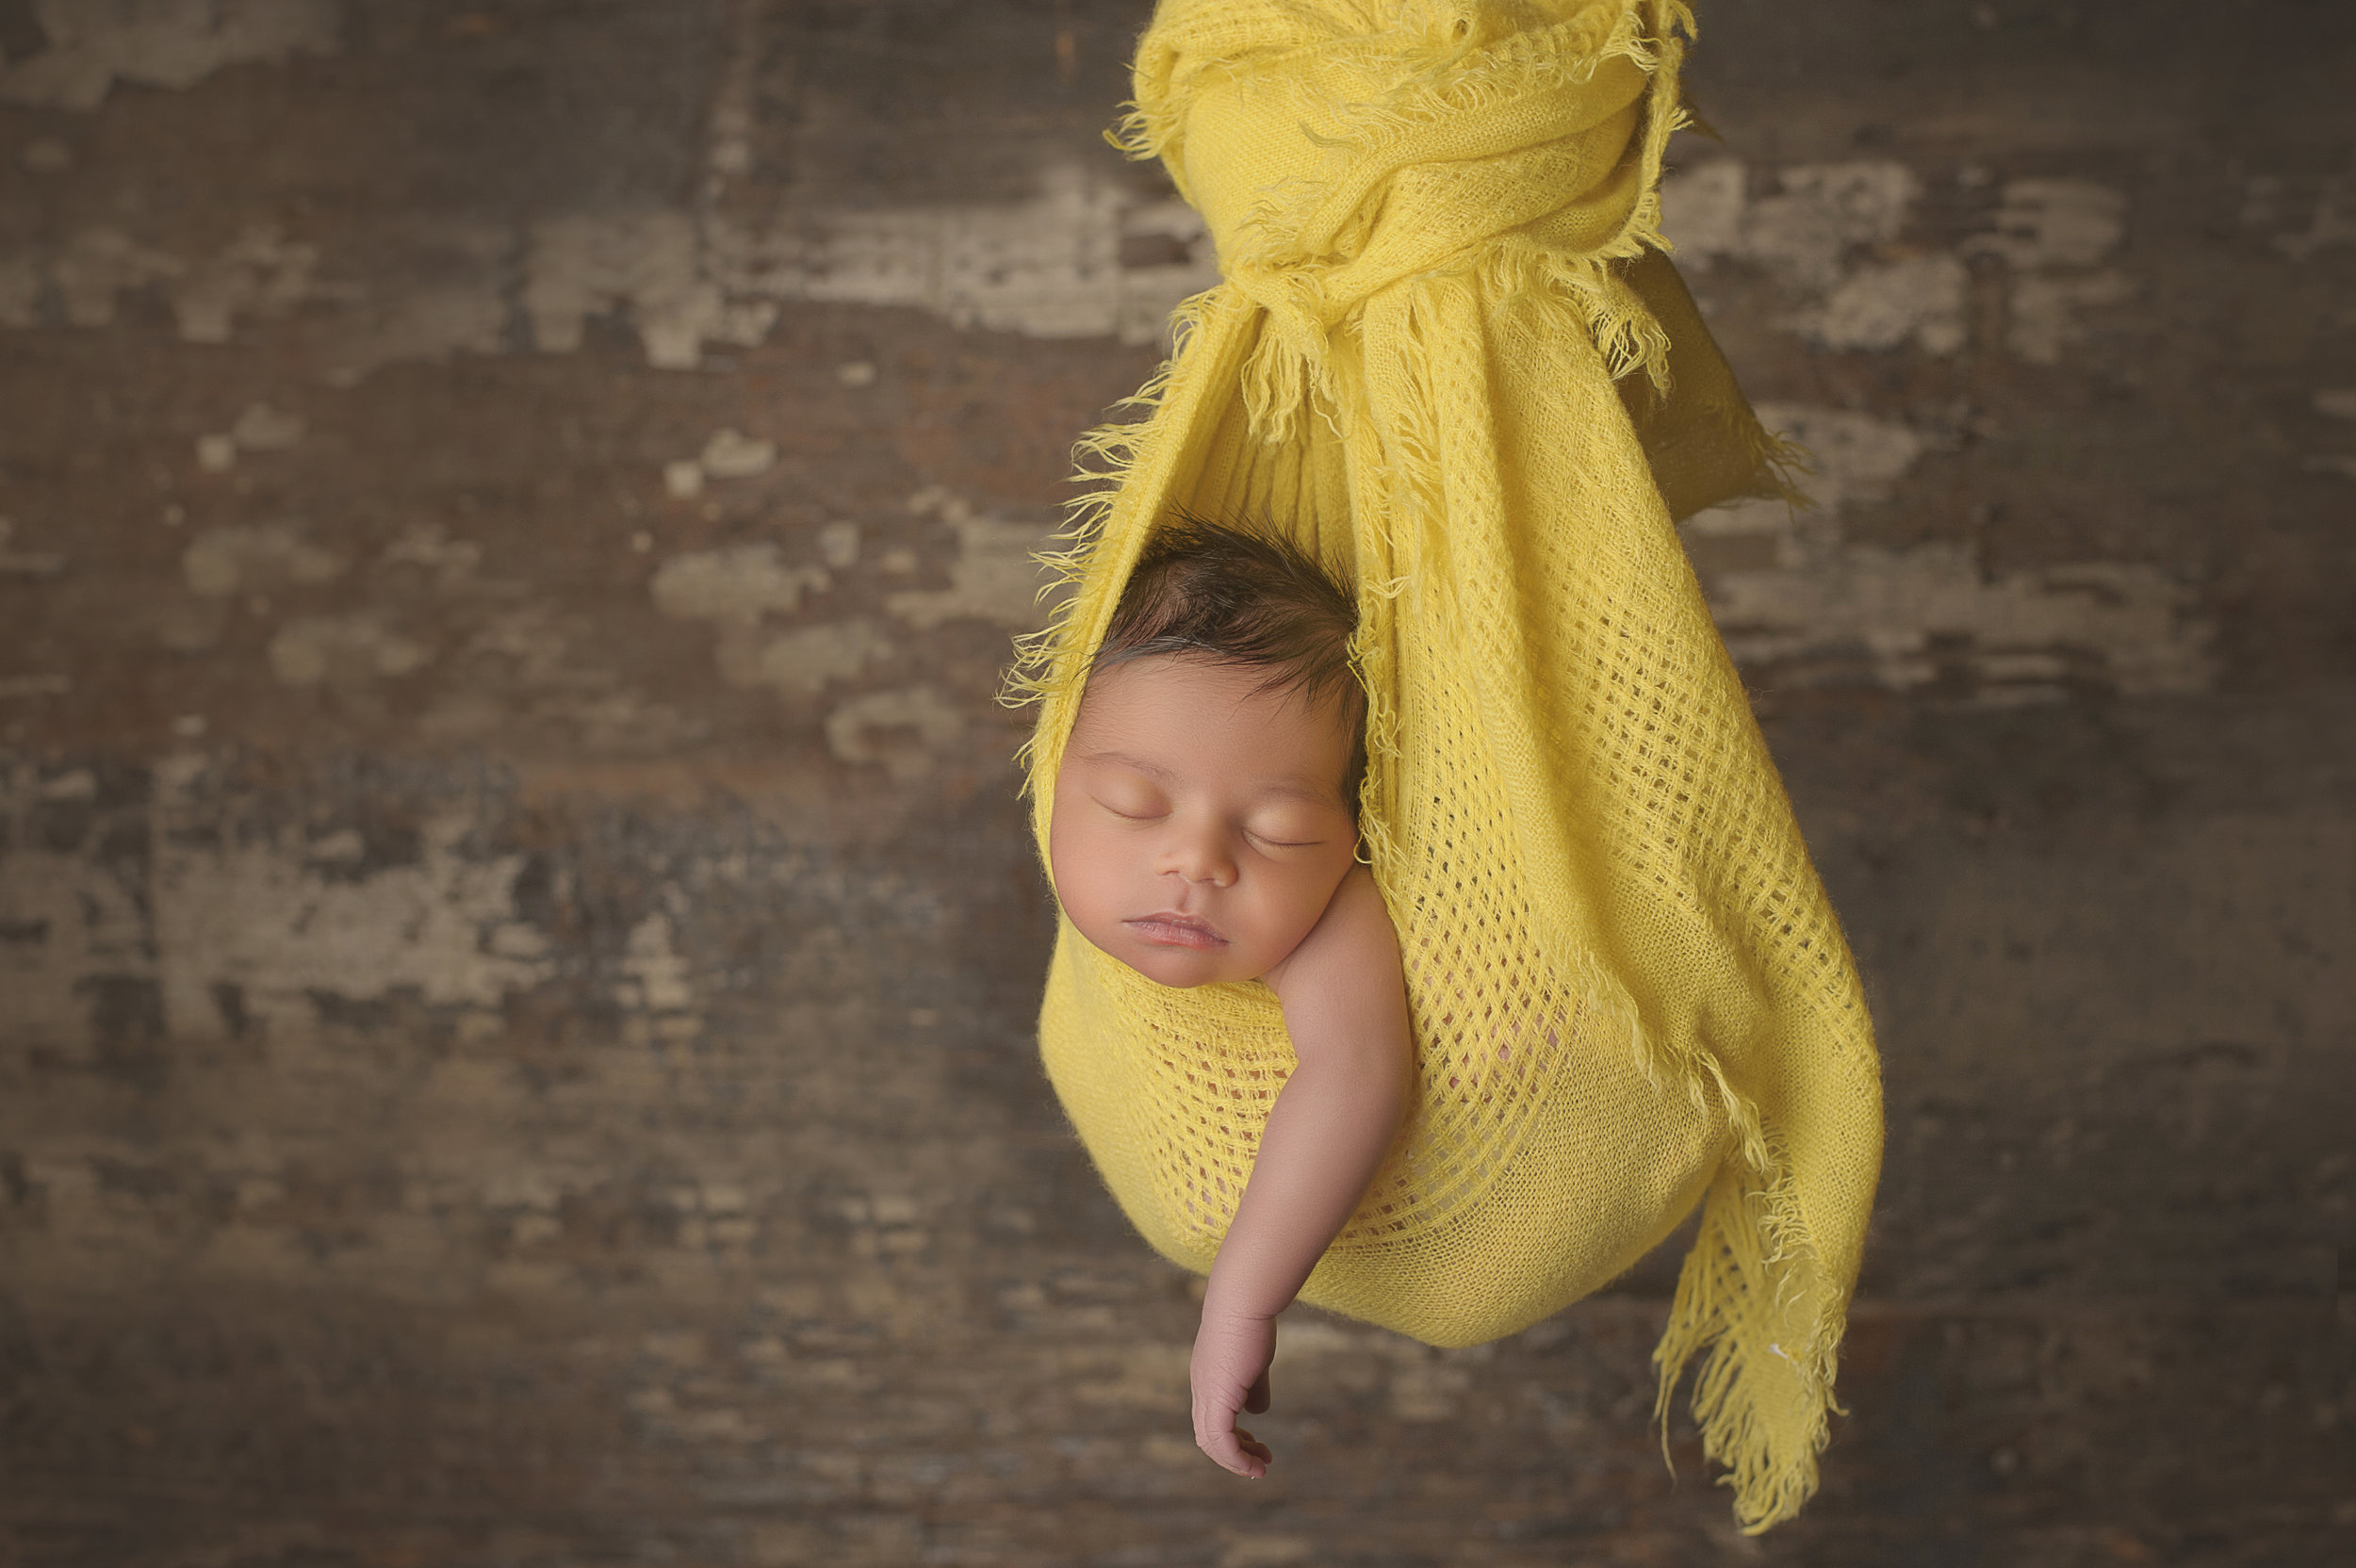 CHICAGO-BEST-NEWBORN-PHOTOGRAPHER-SRI-JANA-19.jpg